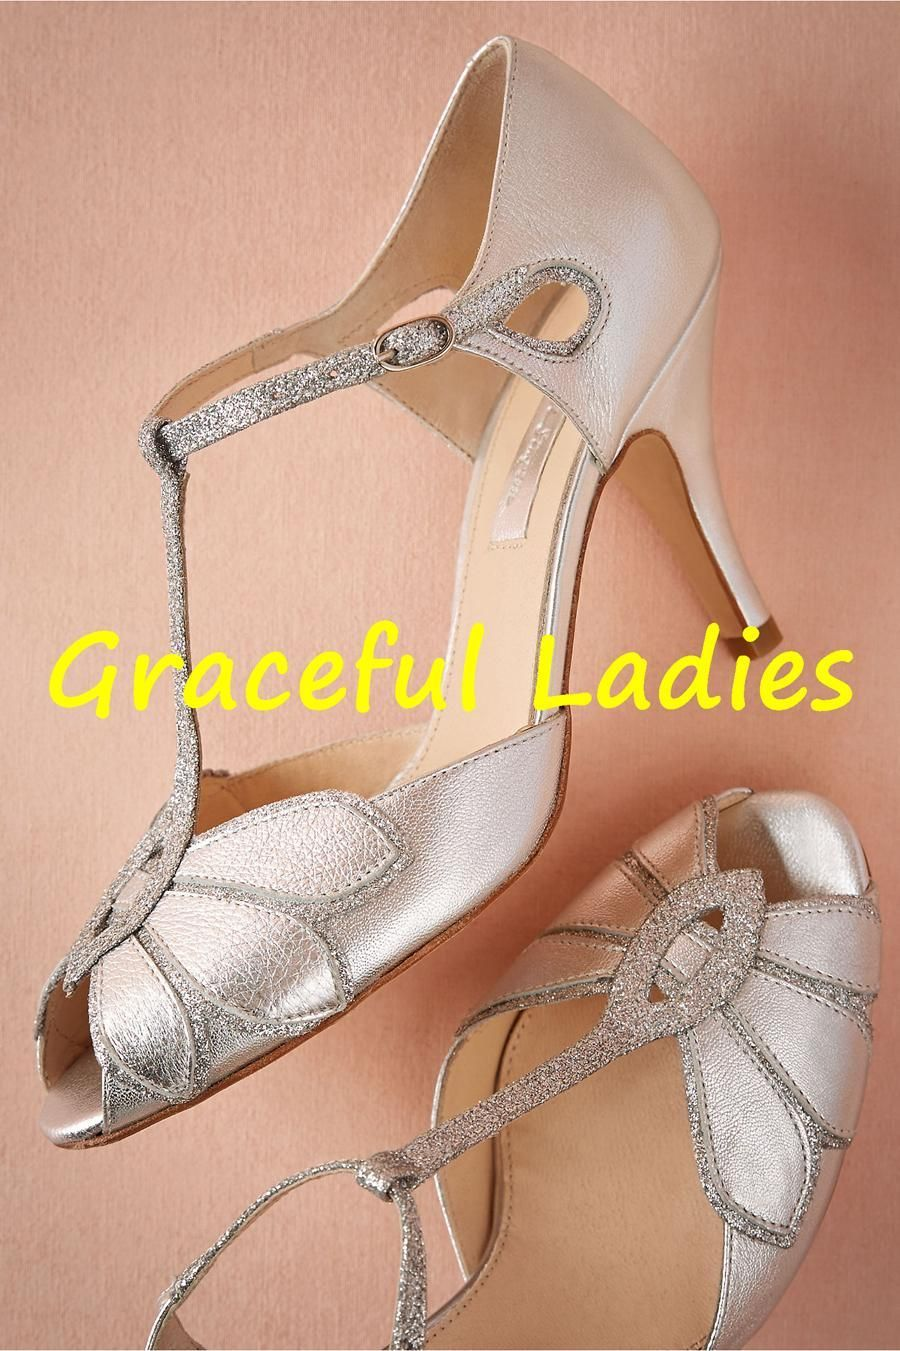 Vintage Gold Wedding Shoes Women Pumps Kitten Heel T Straps Buckle Closure Leather Party Dance 3 High Heels Sandals Custom Made Size